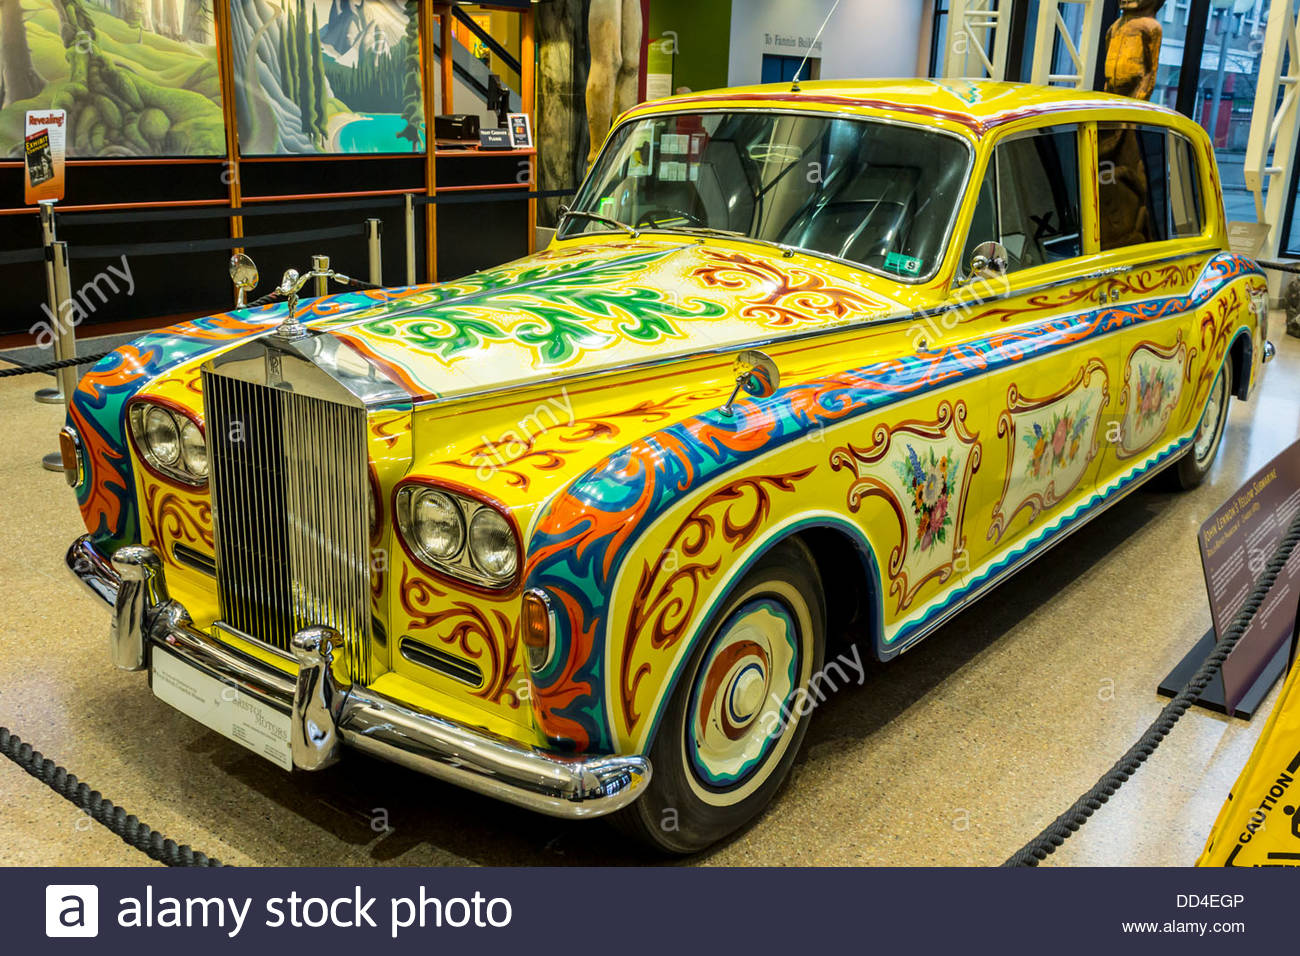 John Lennon S Yellow Submarine Rolls Royce One Sale On Alamy None